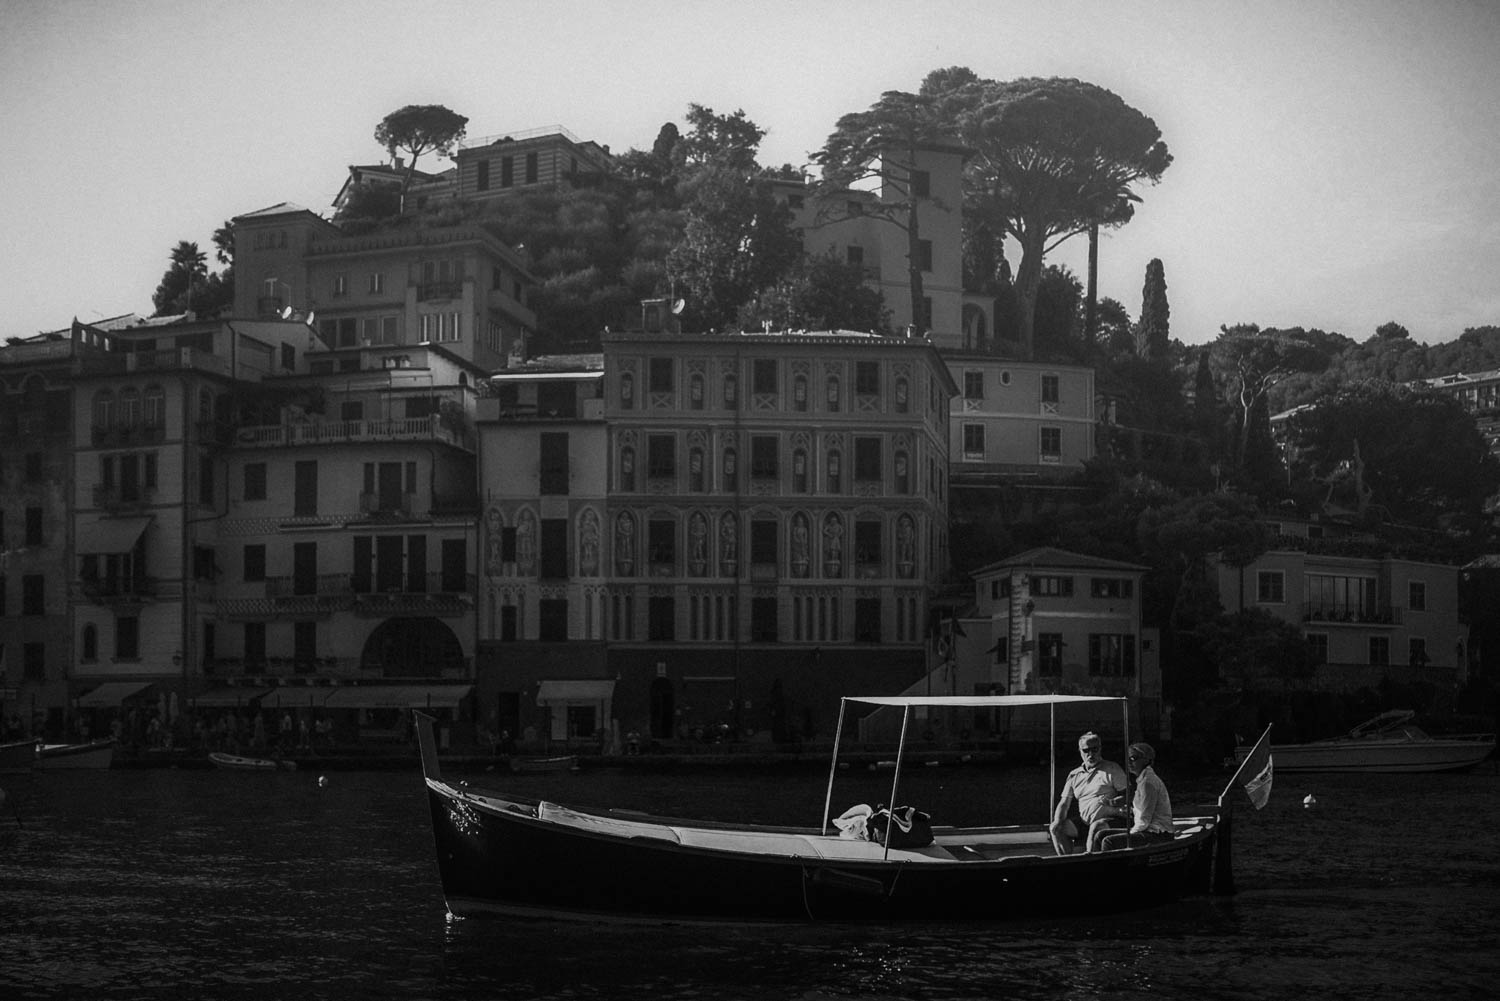 portofino-wedding-photography-rafal-bojar-1-51.jpg